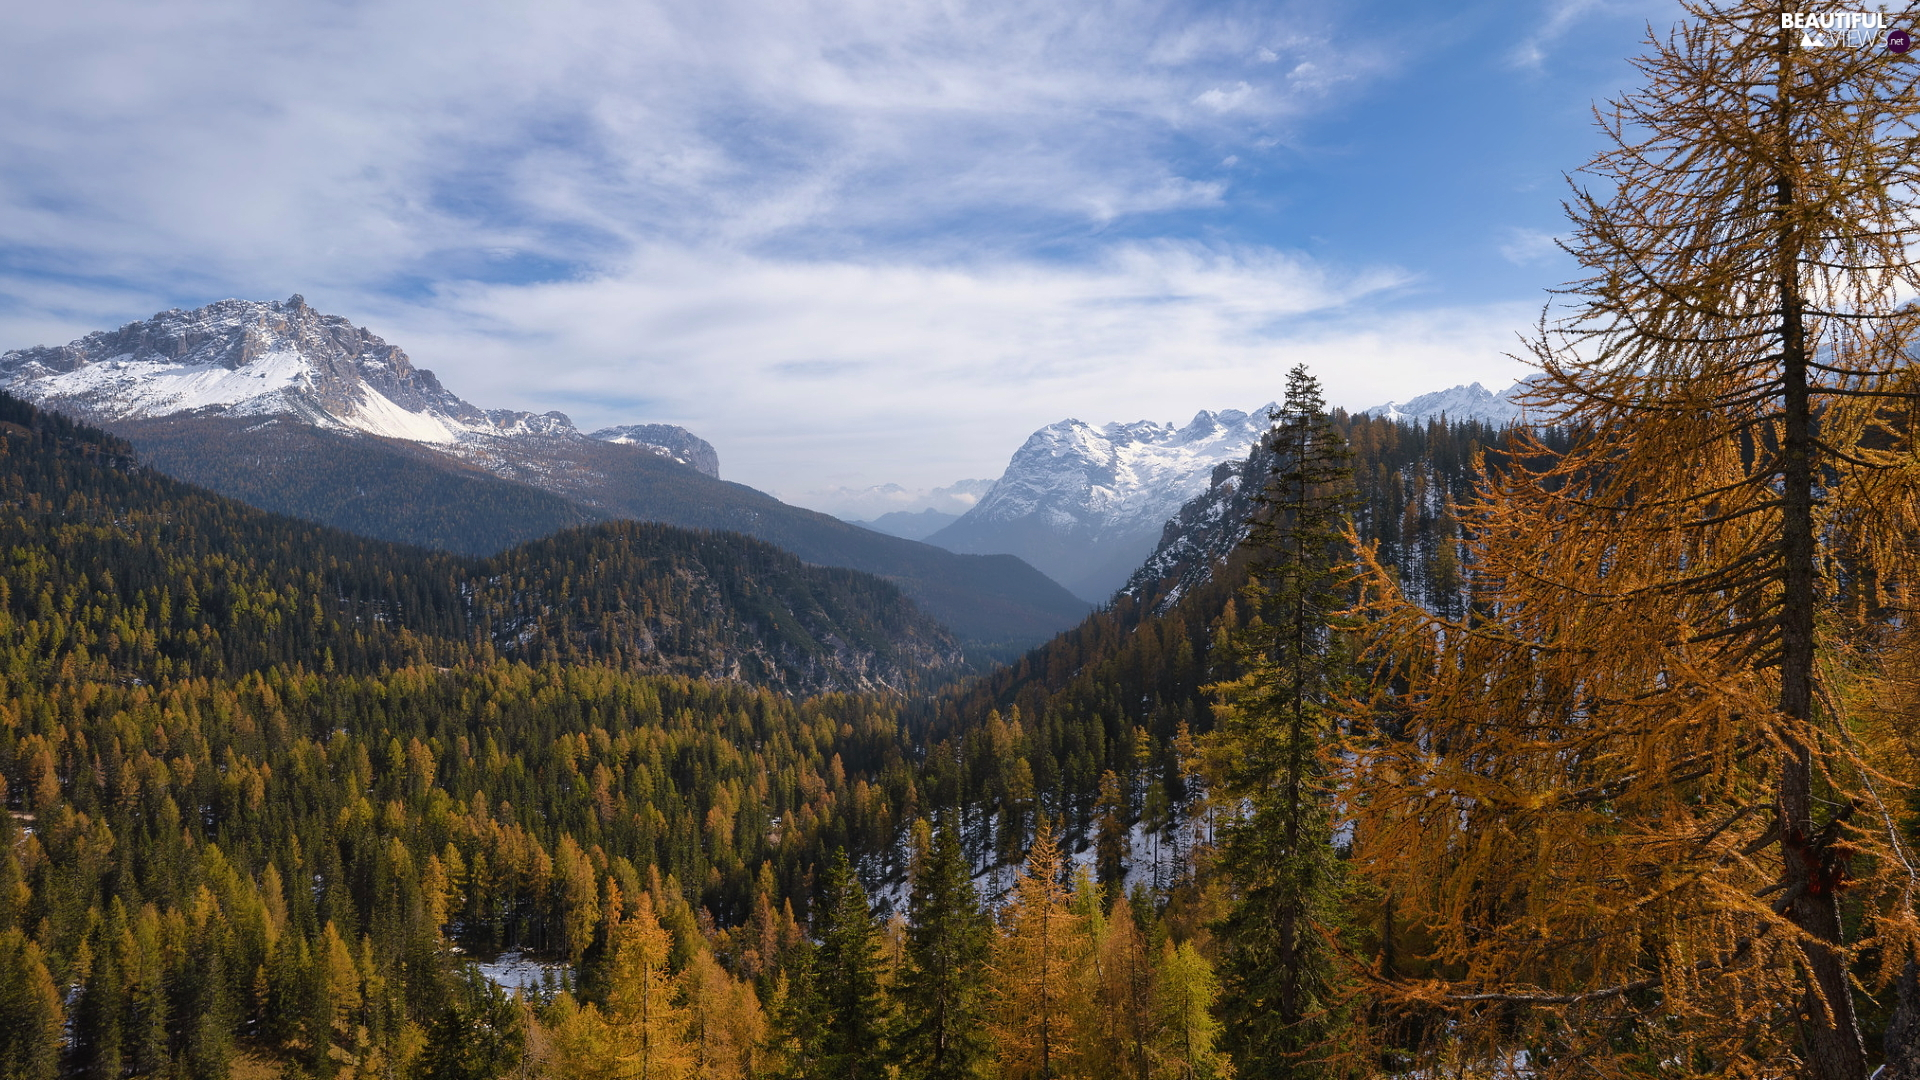 Dolomites, Snowy, woods, Valley, viewes, Italy, South Tyrol, Mountains, peaks, autumn, trees